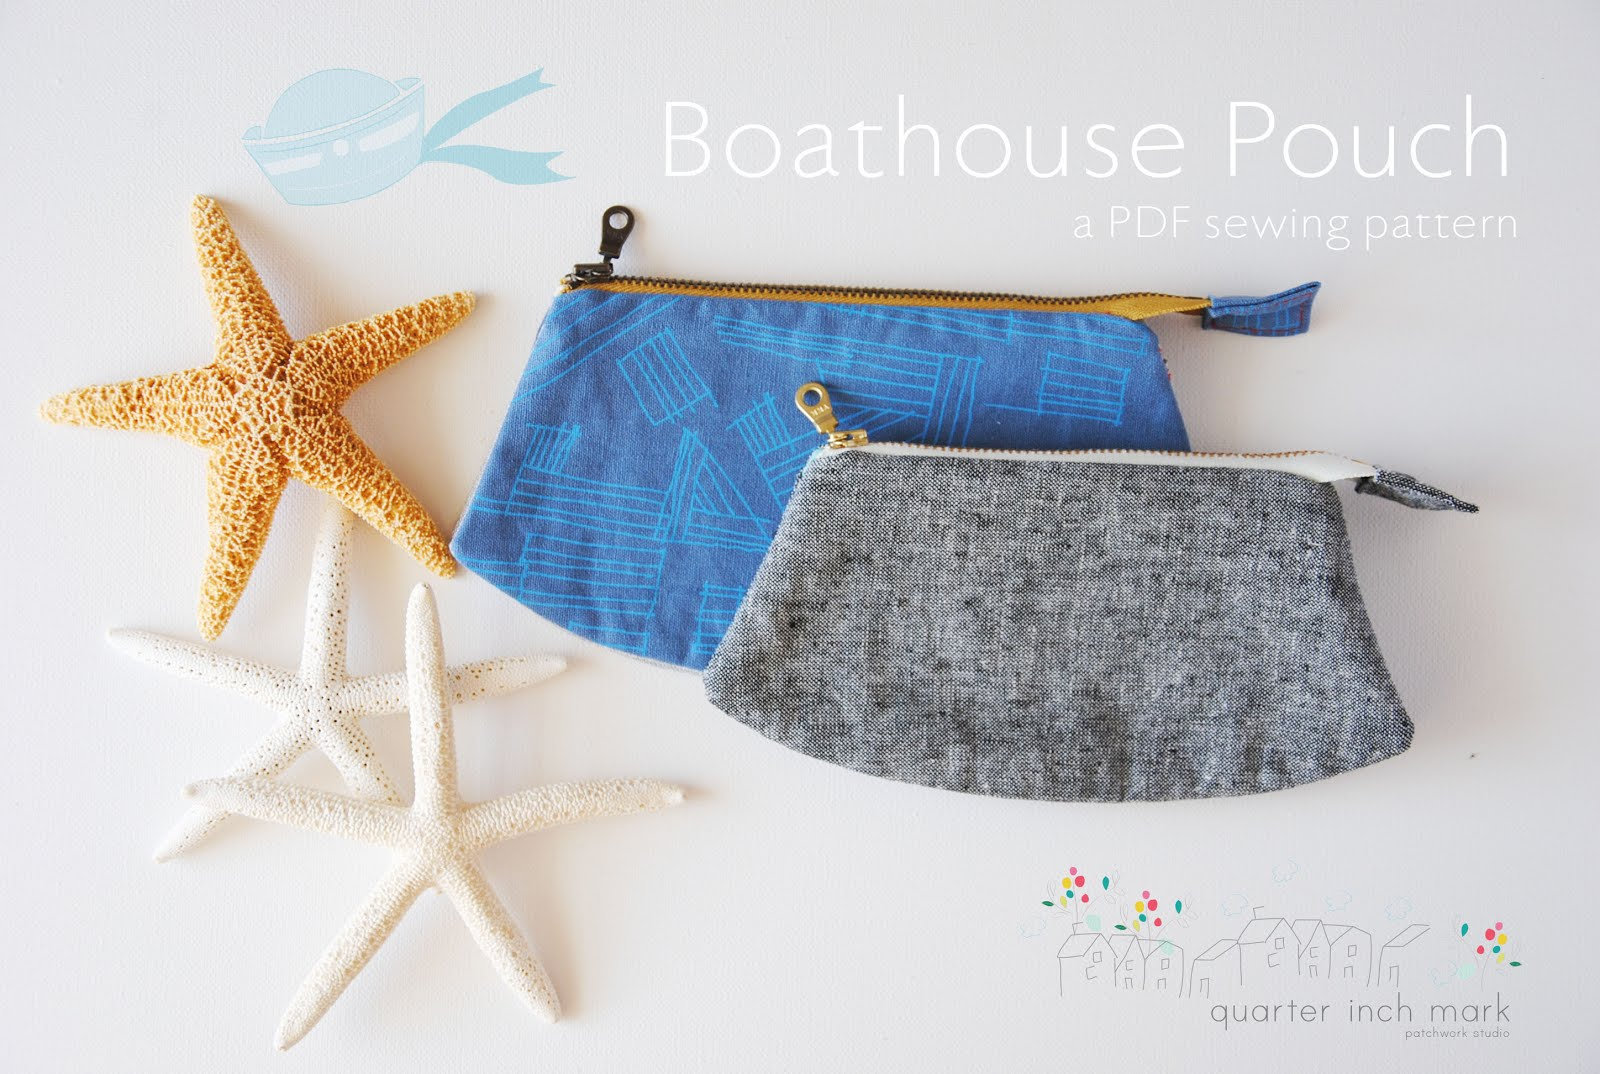 Boathouse Pouch